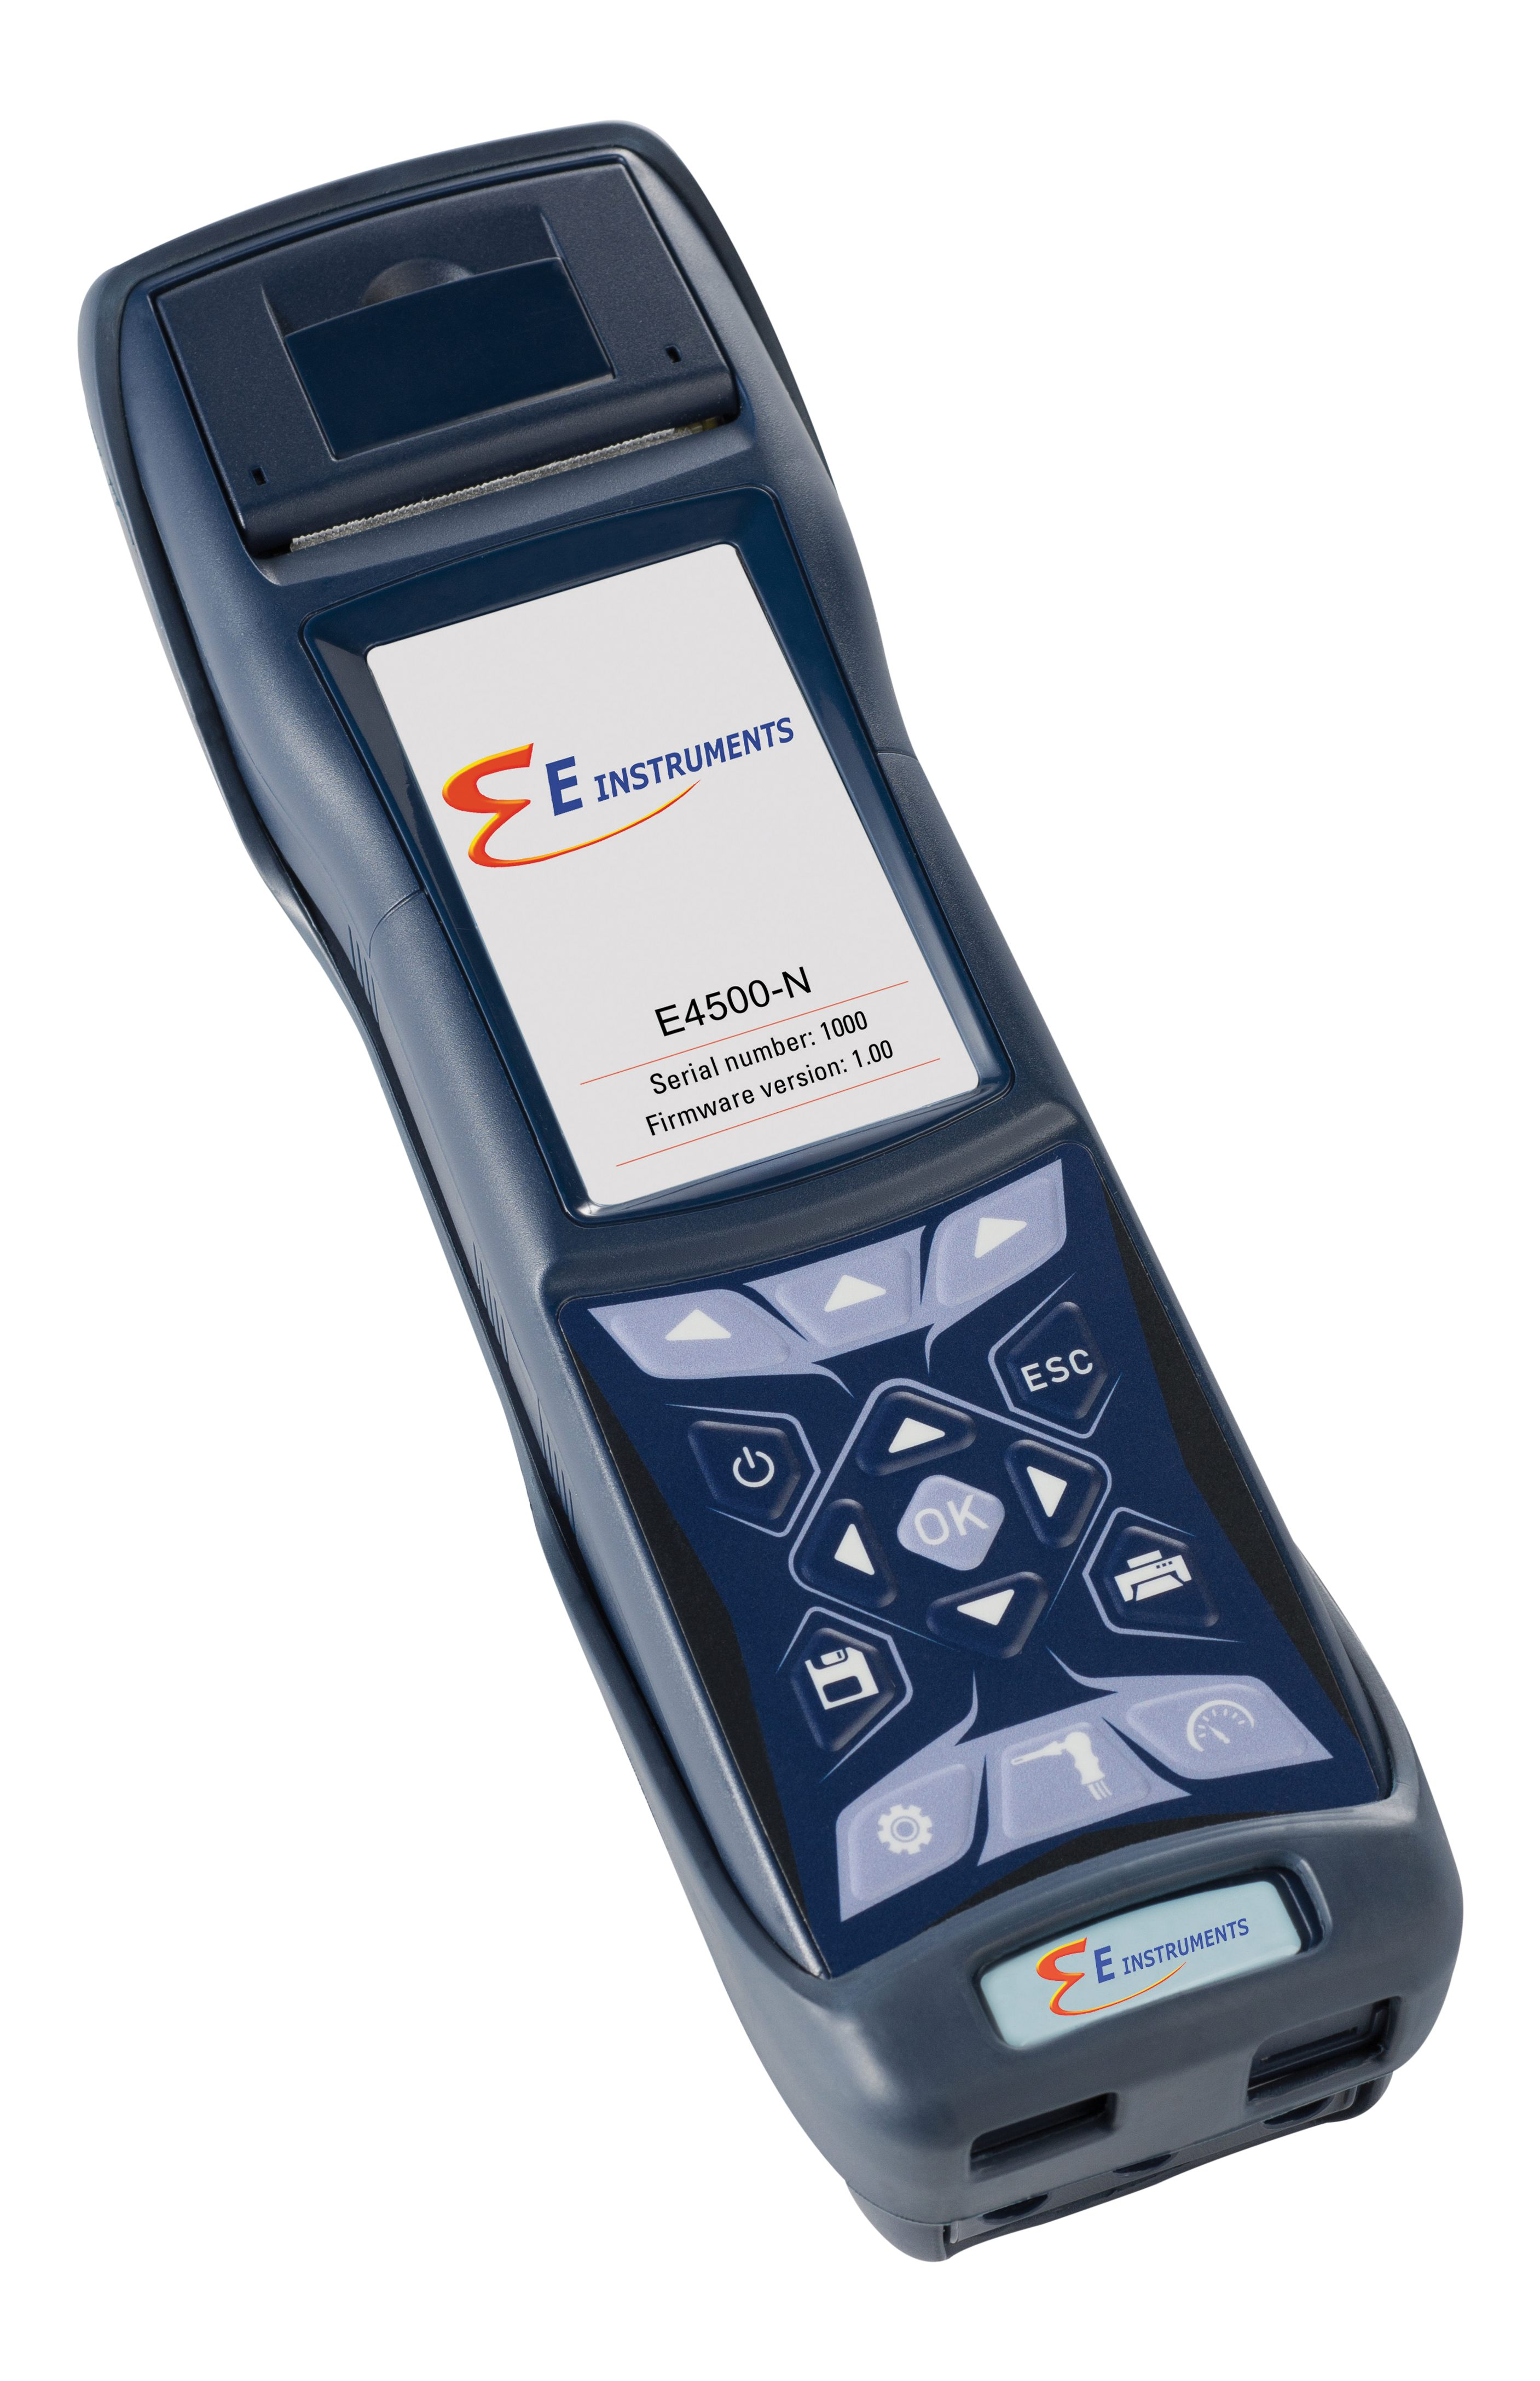 Btu4500 N E Instruments Tools And Test Equipment